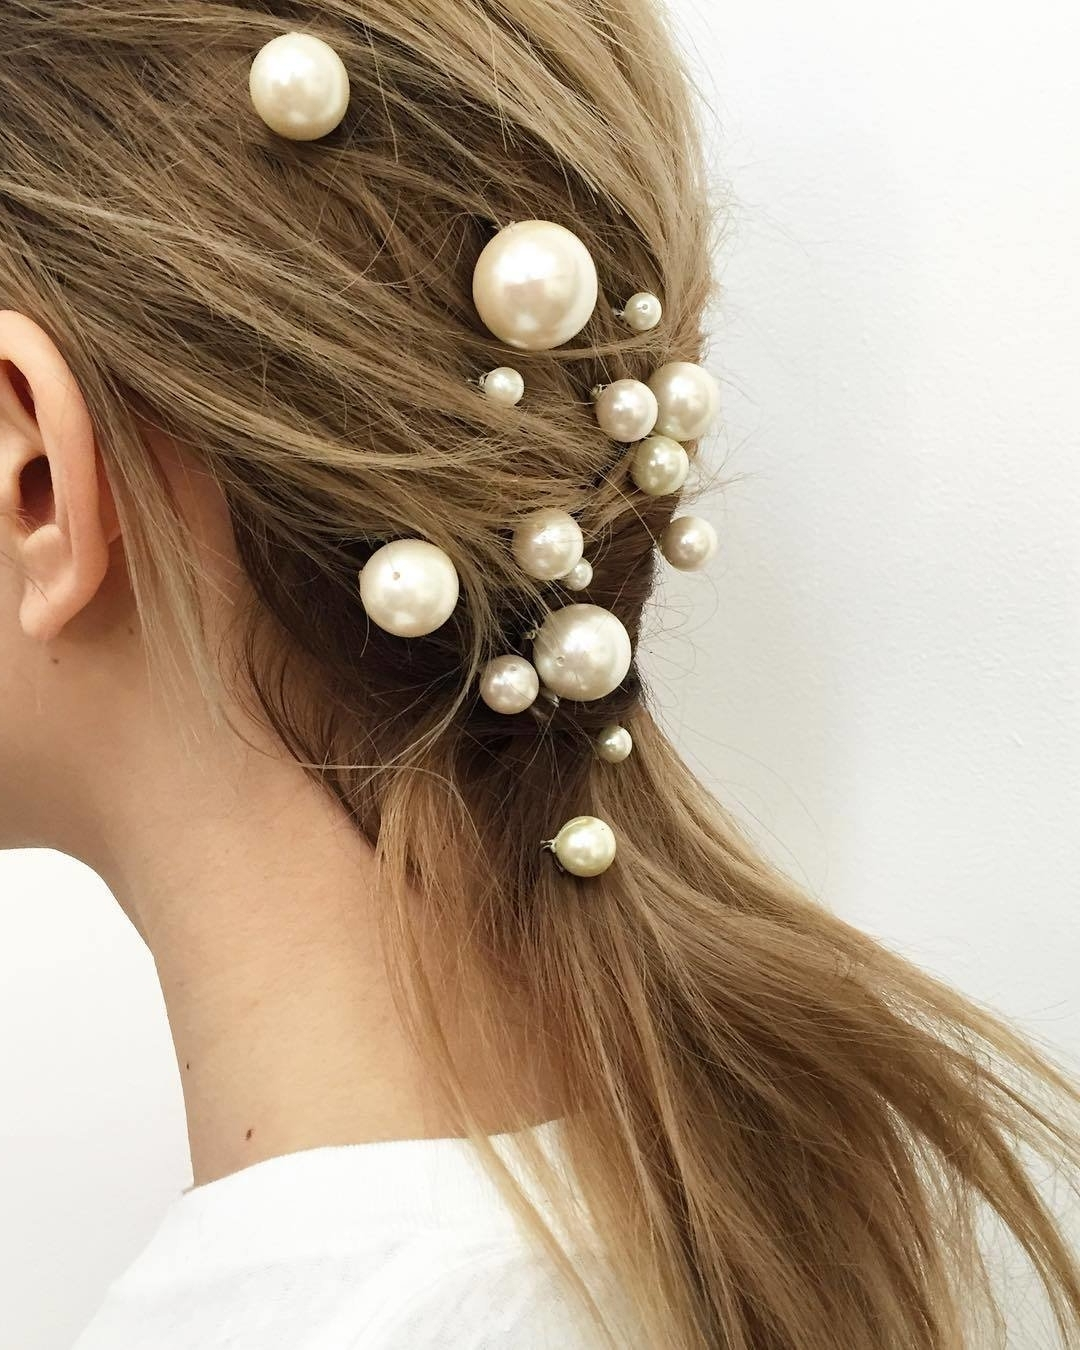 A Pinned Back Low Ponytail Is Made Insanely Elegant With Pearls With Regard To Current Hot High Rebellious Ponytail Hairstyles (Gallery 9 of 20)